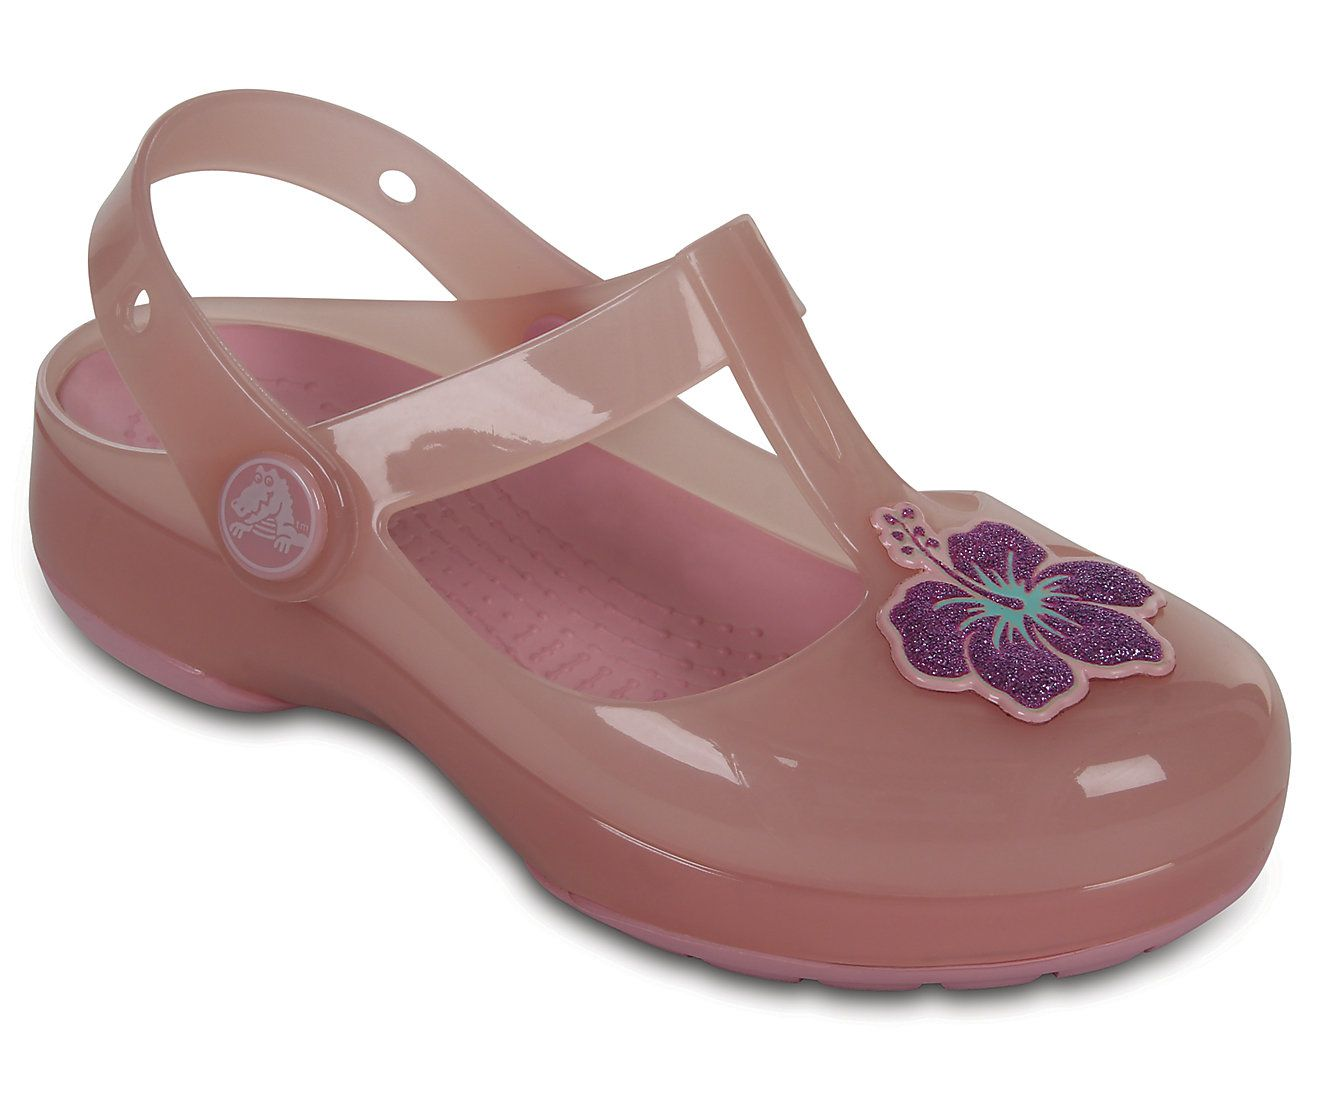 1bff133b05a5 Crocs Isabella Clog PS Price in India- Buy Crocs Isabella Clog PS Online at  Snapdeal